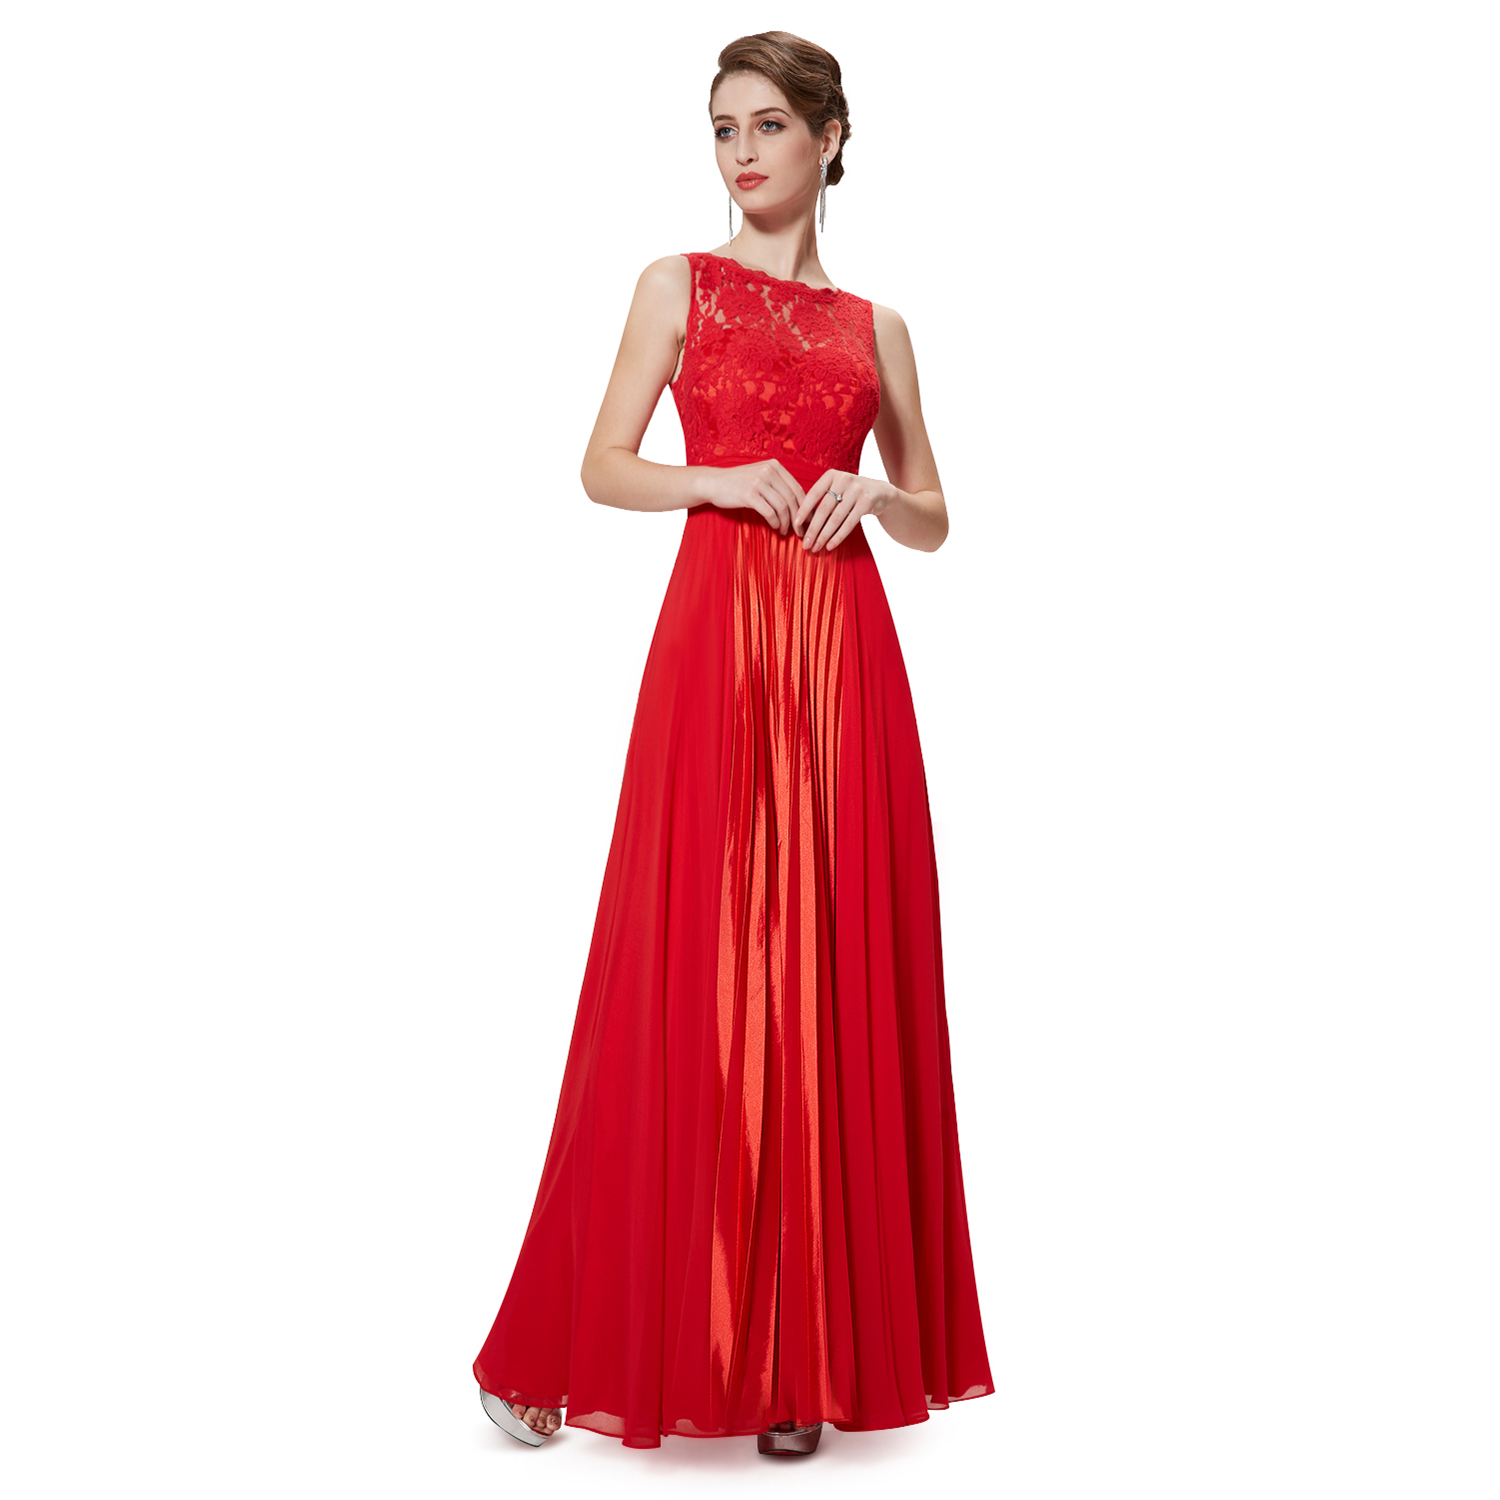 Greek Prom Dresses Uk Inofashionstyle Com: UK Women Lace Formal Long Evening Party Dress Cocktail